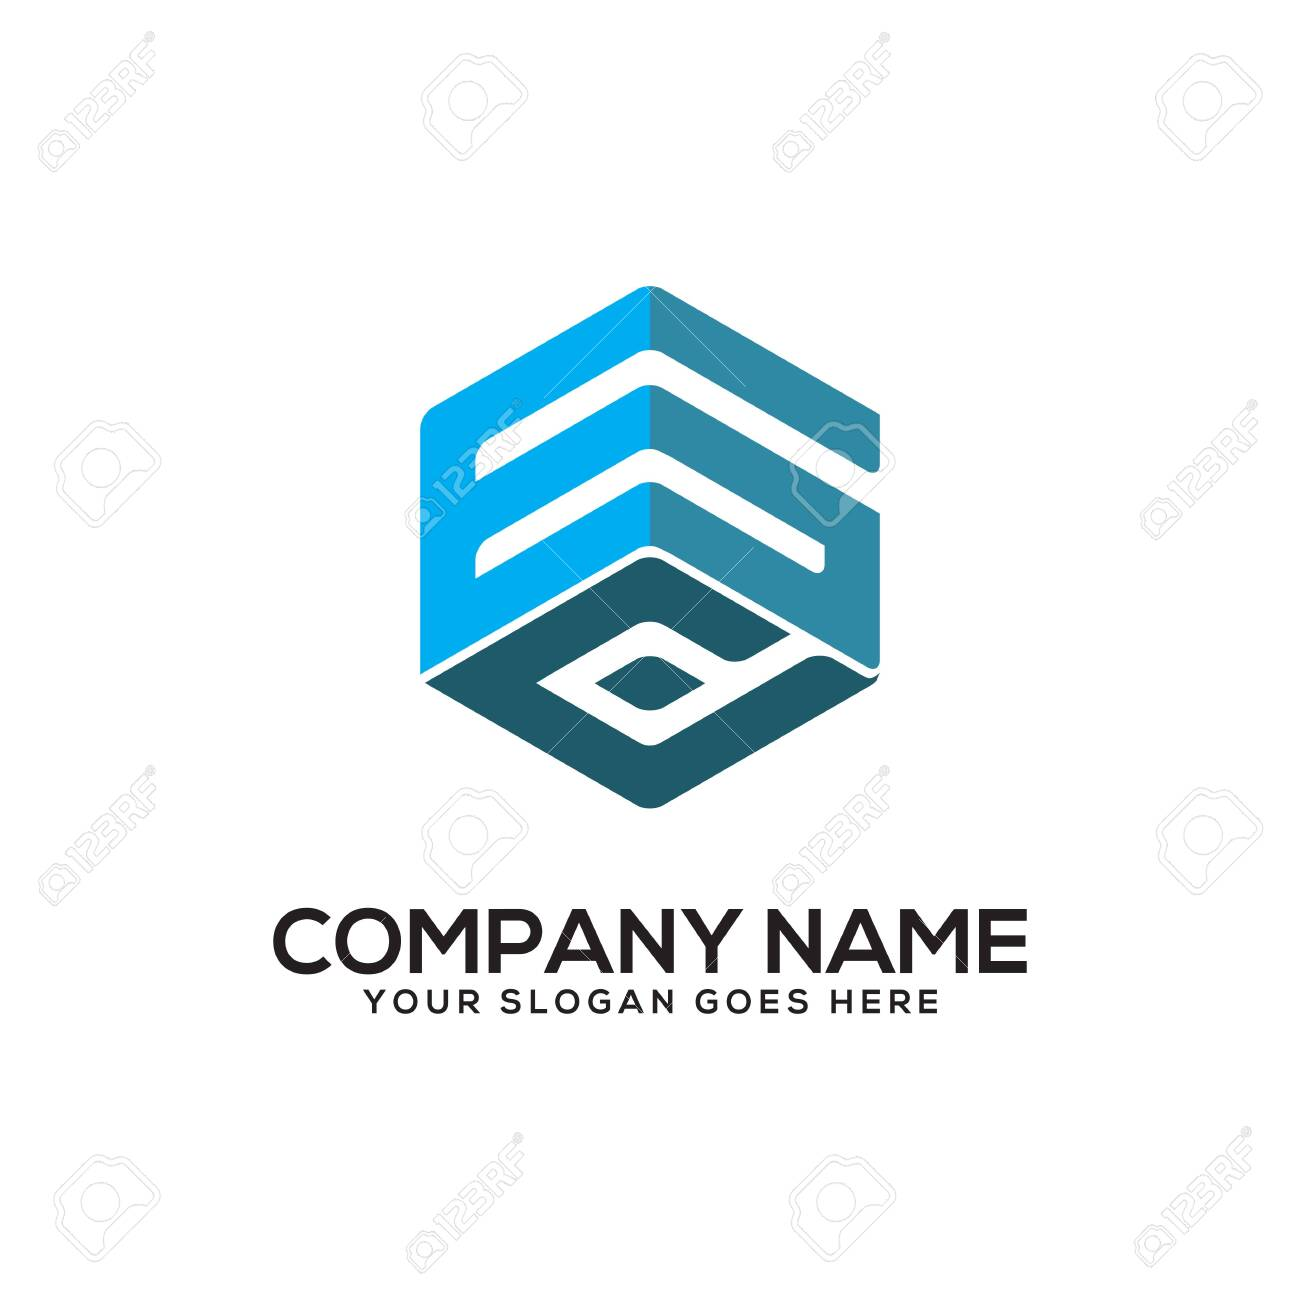 GD initial letter Logo Inspiration, G and D combination logo vector with hexagonal idea - 129786938